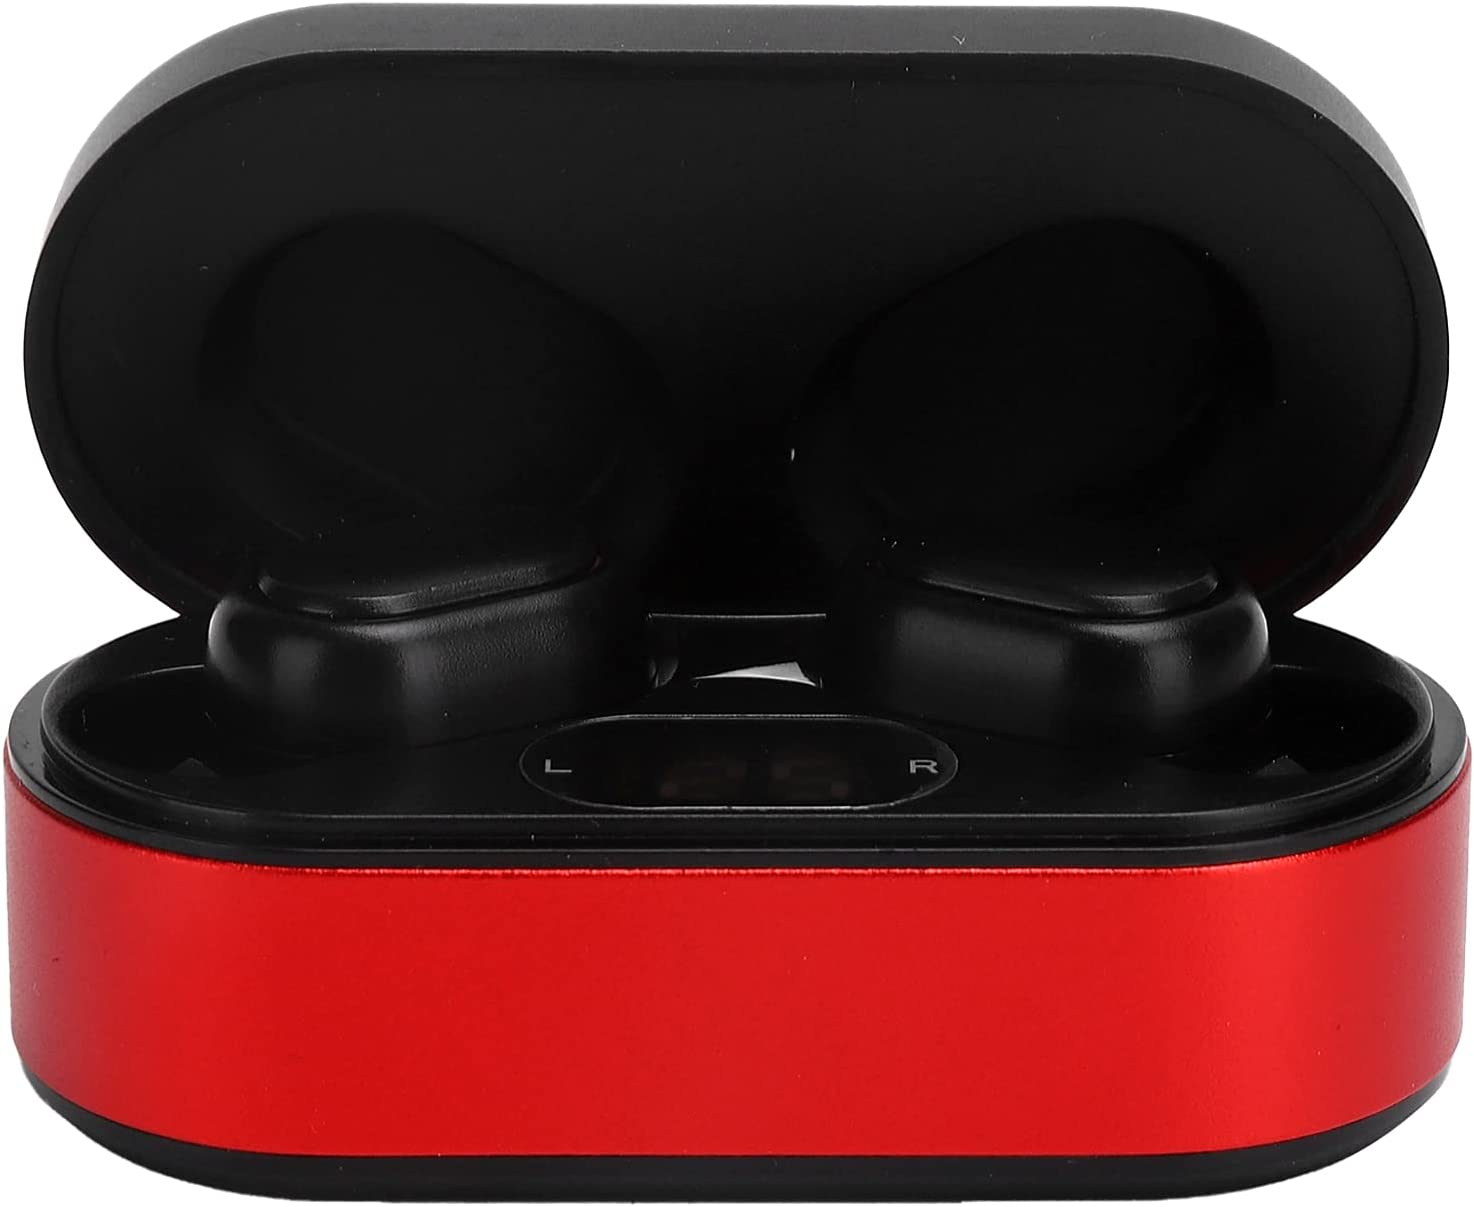 Wireless Intelligent Bluetooth Headset,3D Sound Effects,Three‑Frequency Adjustment, Low Frequency Shock, High Performance for Various Situations(Red)